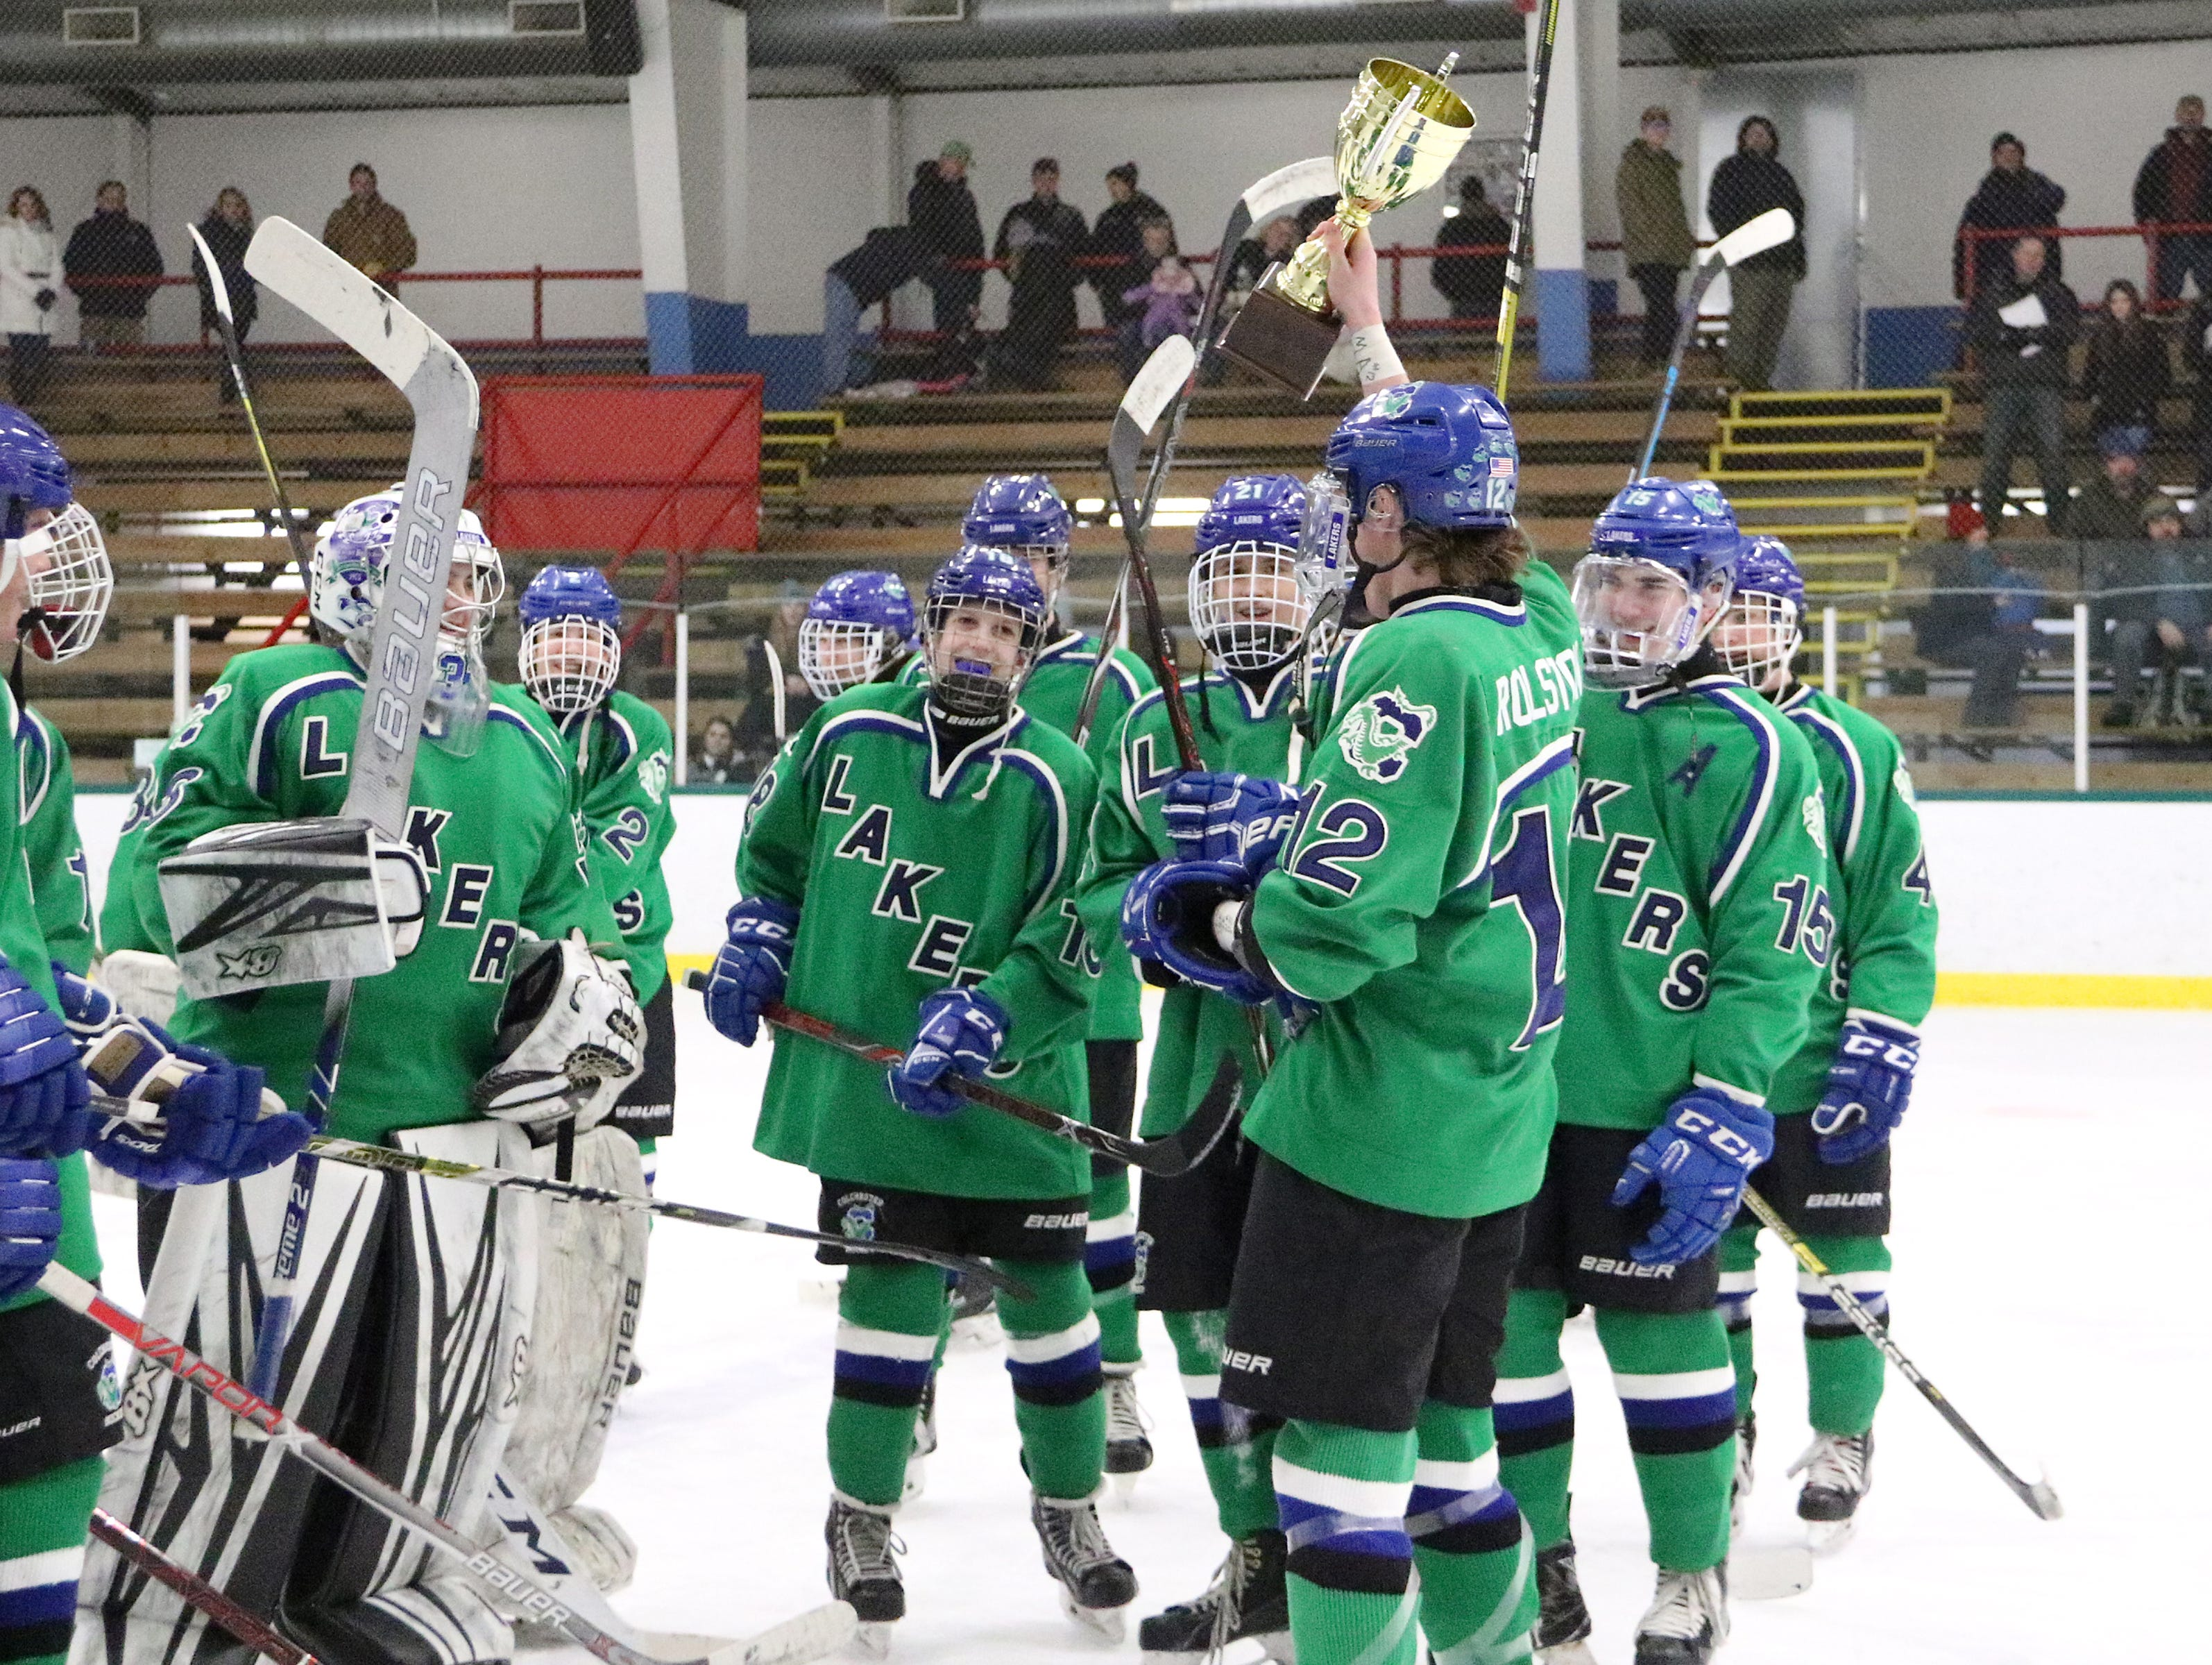 Senior Cam Rolston brings the BAHA Cup home to his teammates on Saturday at Leddy Arena. The senior netted two goals in the 6-0 win over Burlington.